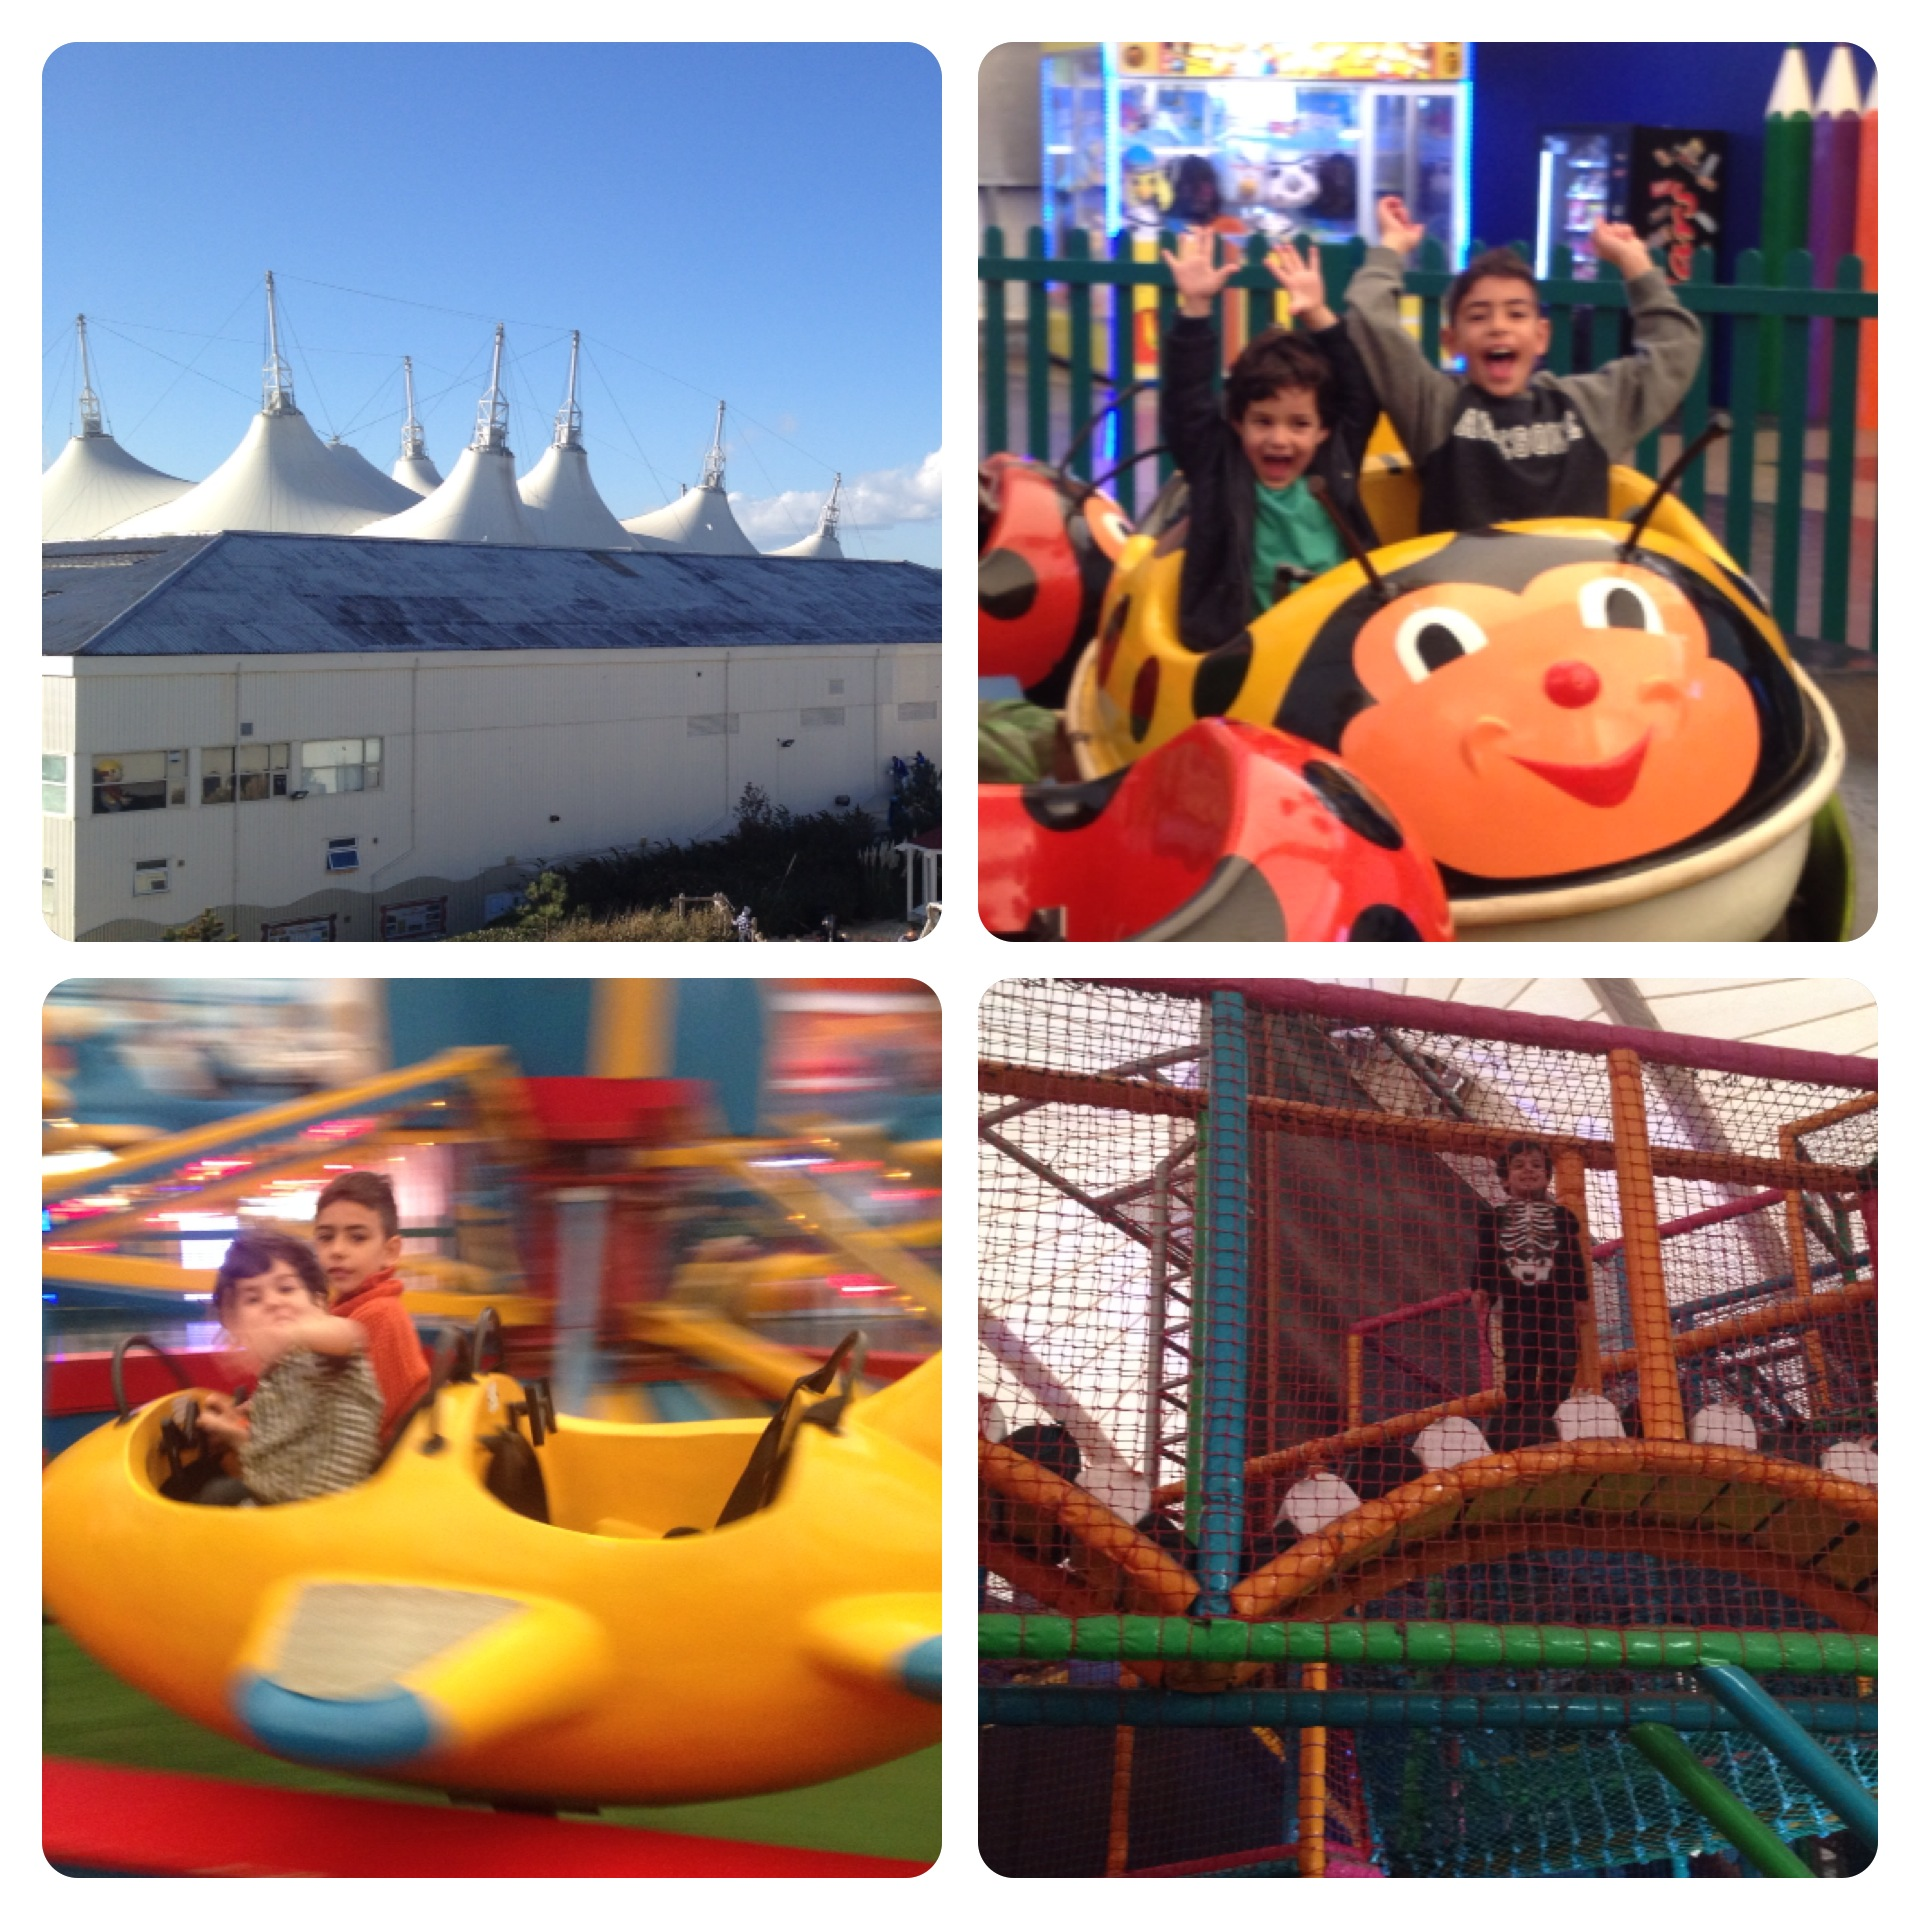 Skyline Pavillion Rides and Soft Play